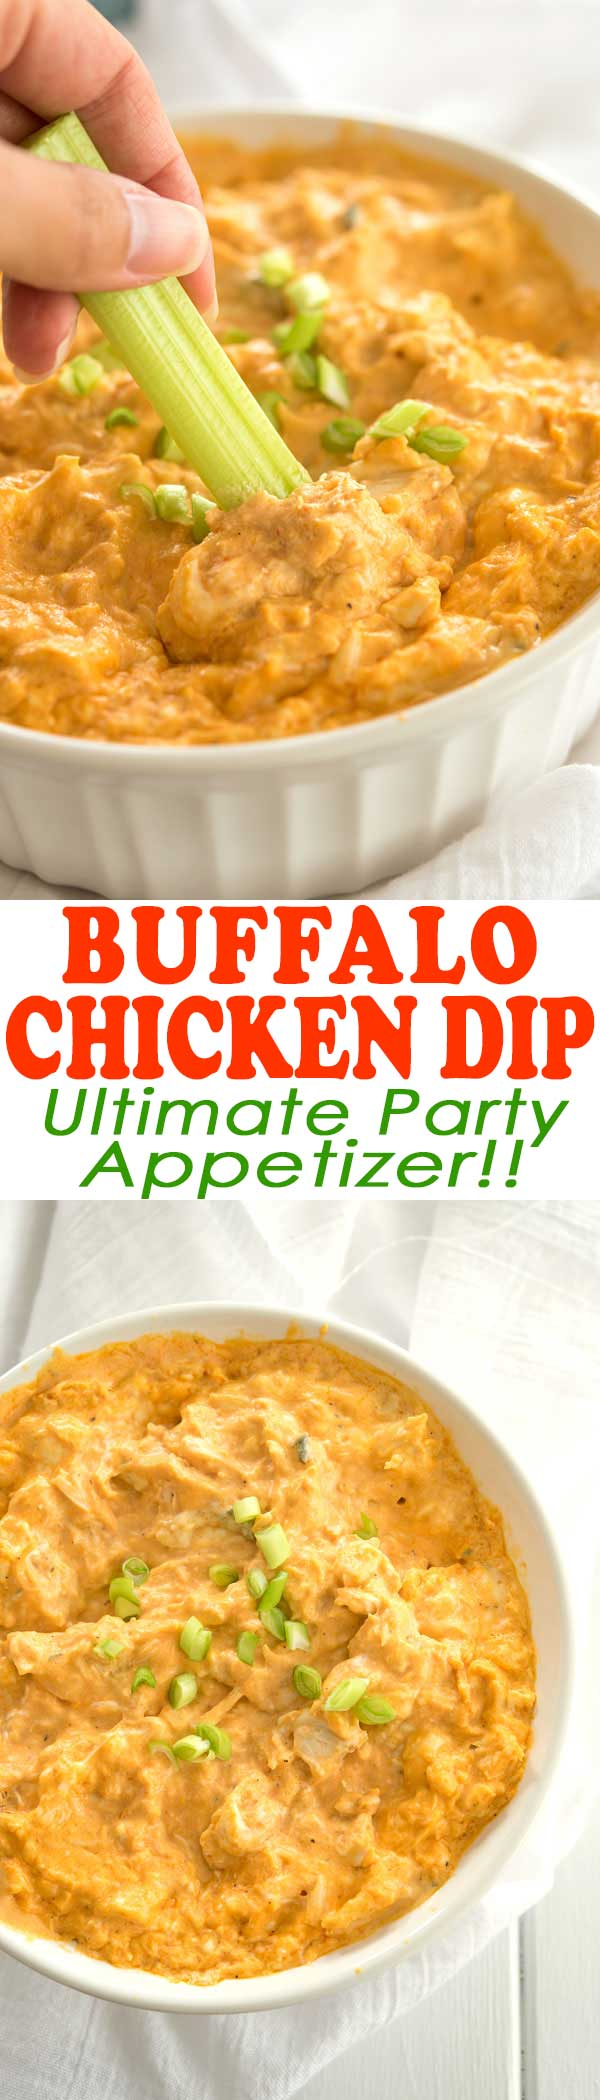 BEST DIP EVER! Easy recipe on how to make buffalo chicken dip! (Cook in crock pot or oven baked like I did). #appetizer #superbowl